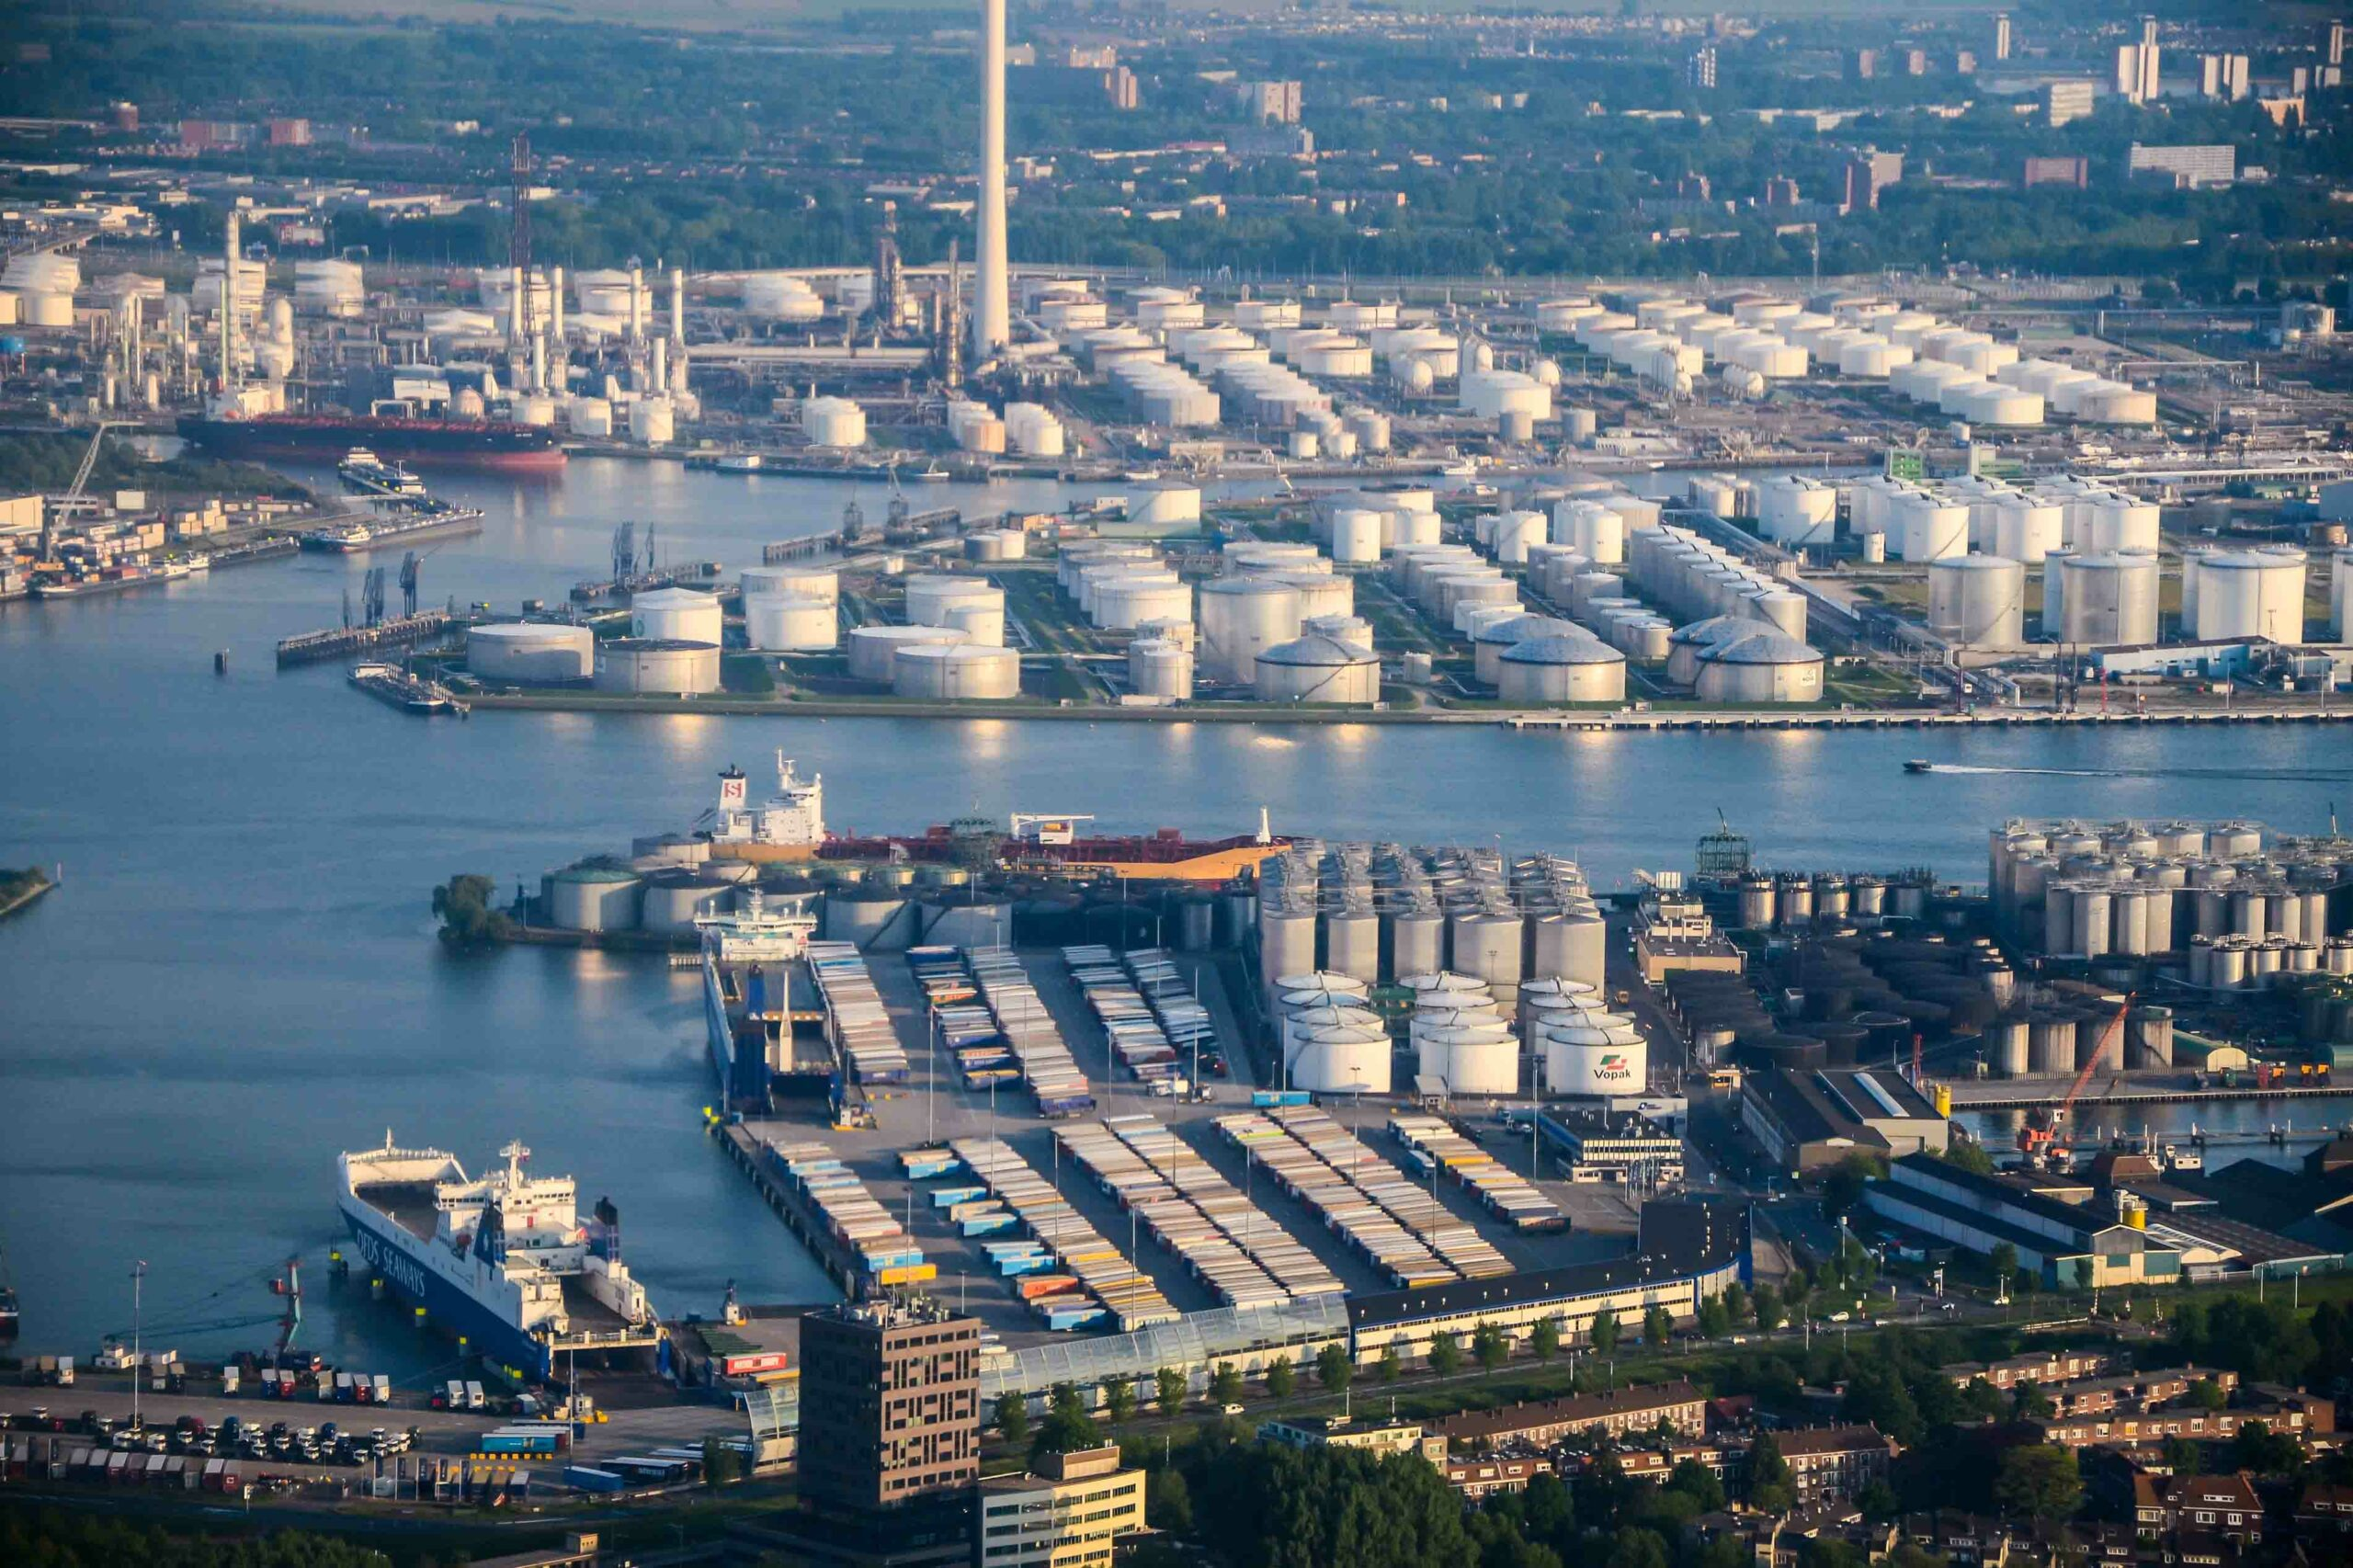 Steepest Decline in Cargo Volumes in more than a decade at Dutch Seaports Apollo Cargo Alliance